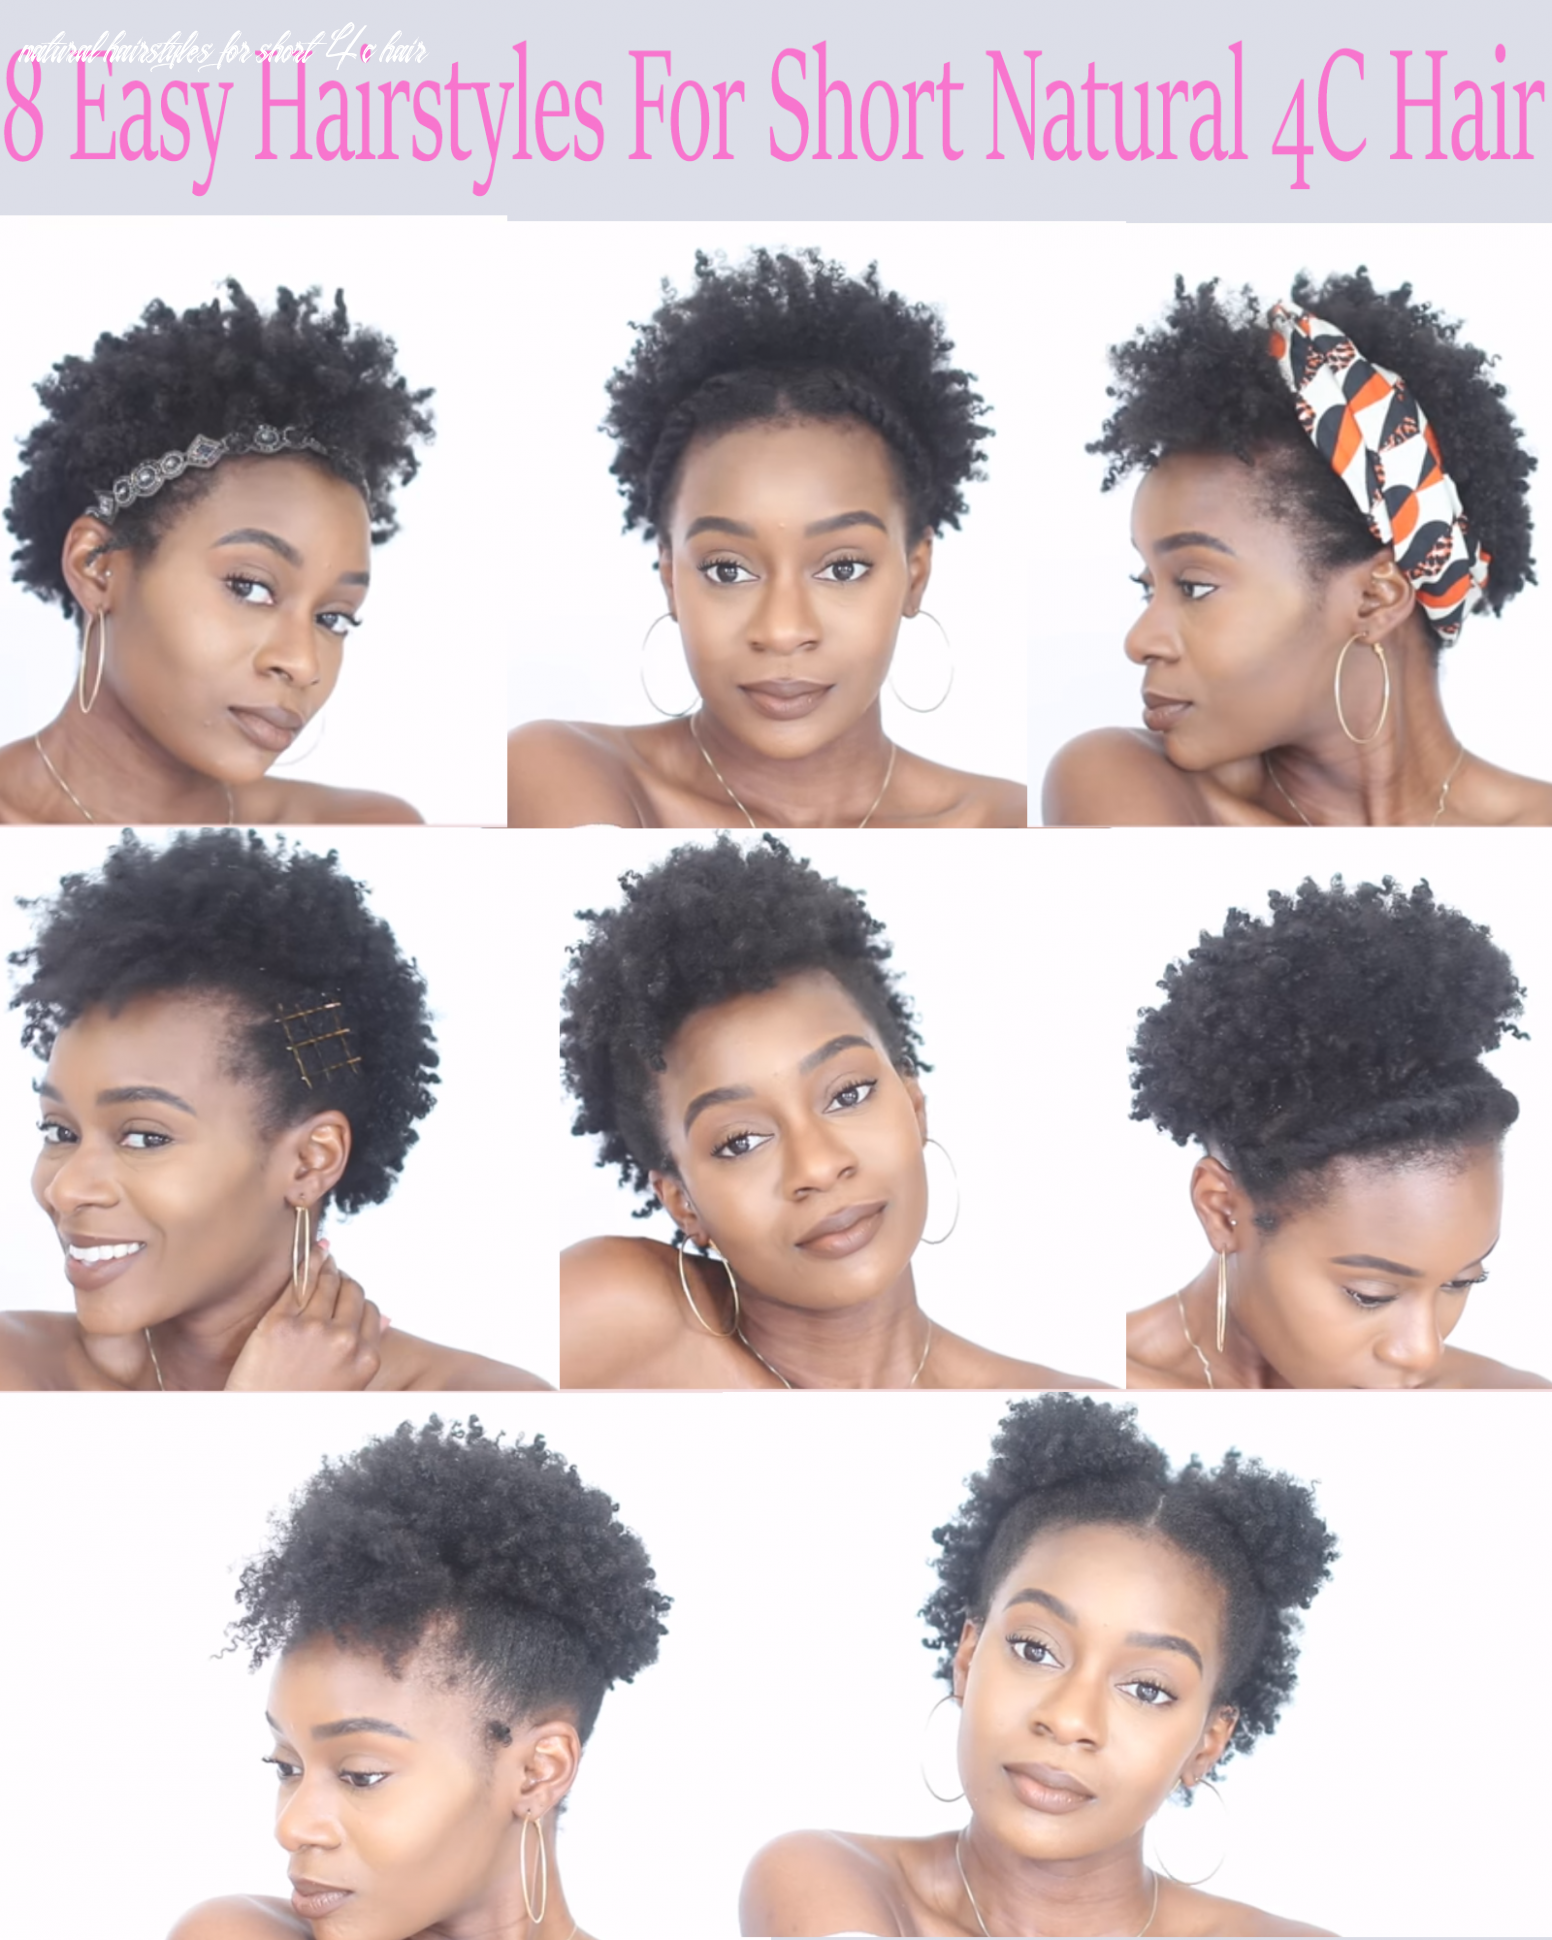 10 easy protective hairstyles for short natural 10c hair that will